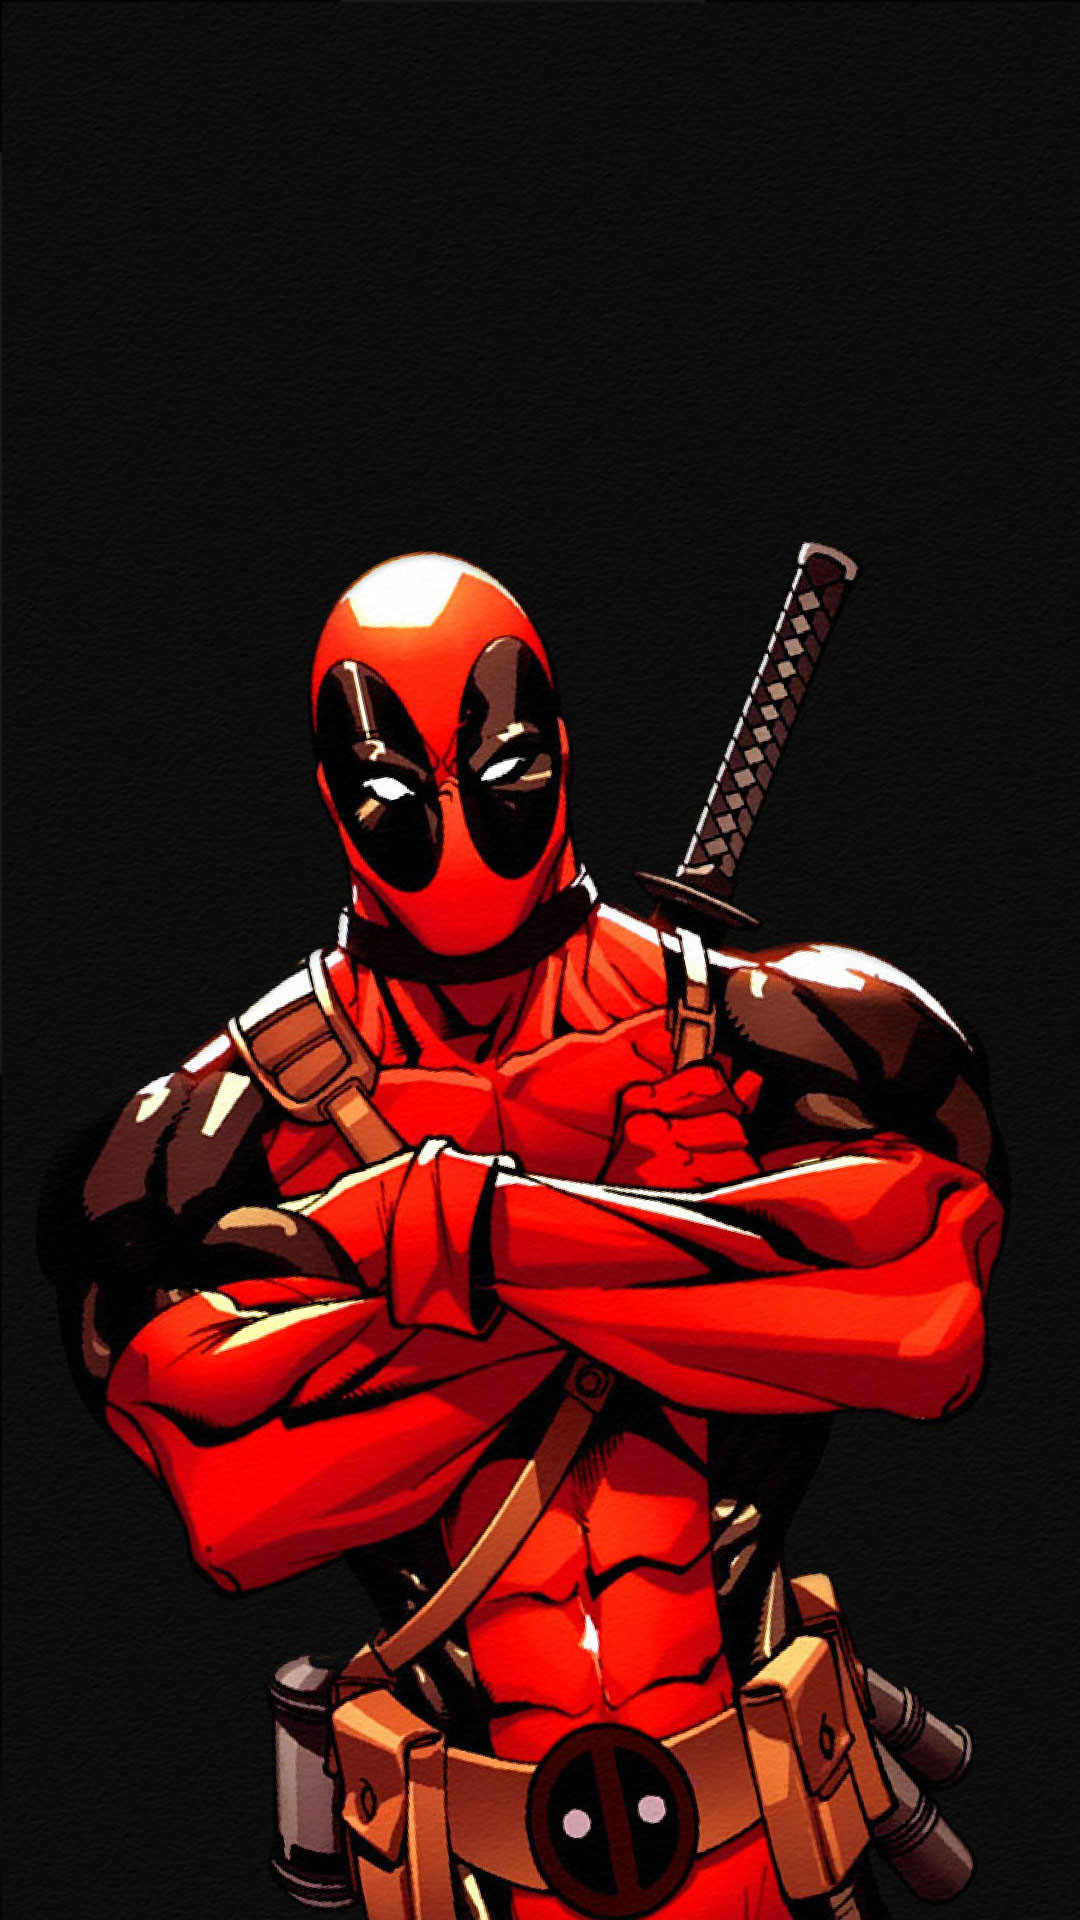 Free Download Deadpool The Game Wallpaper For Mobile Wall For Android 1080x1920 For Your Desktop Mobile Tablet Explore 49 Deadpool Wallpaper Mobile Deadpool Iphone Wallpaper Deadpool Live Wallpapers Deadpool